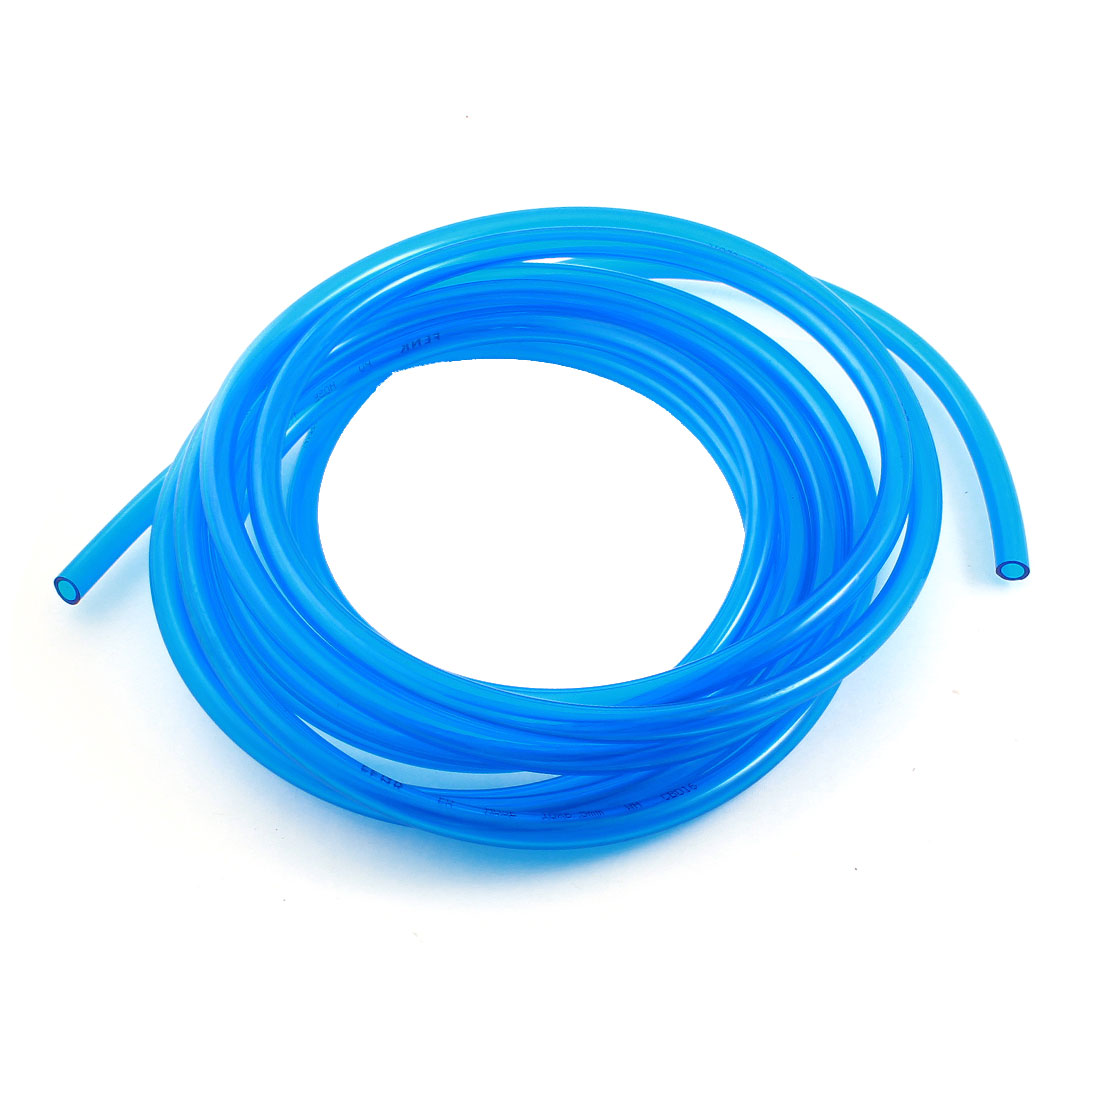 Pneumatic 6.5x10mm Air Gas Quick Fittings Connection PU Line Tube 5M Clear Blue